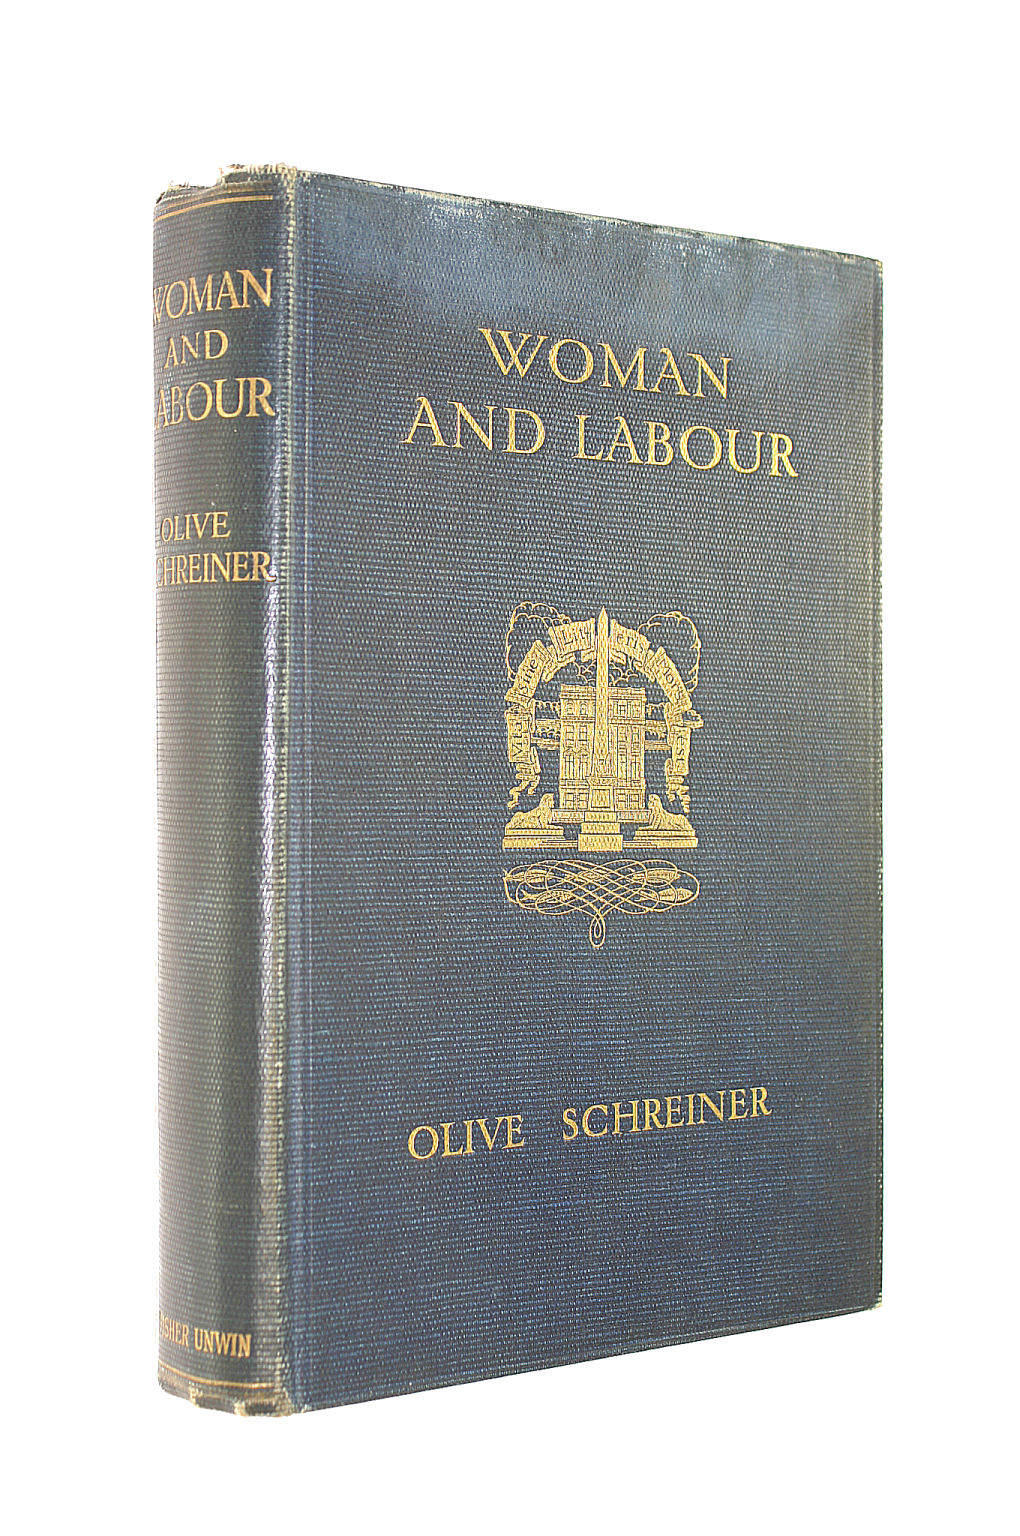 Image for Woman And Labour